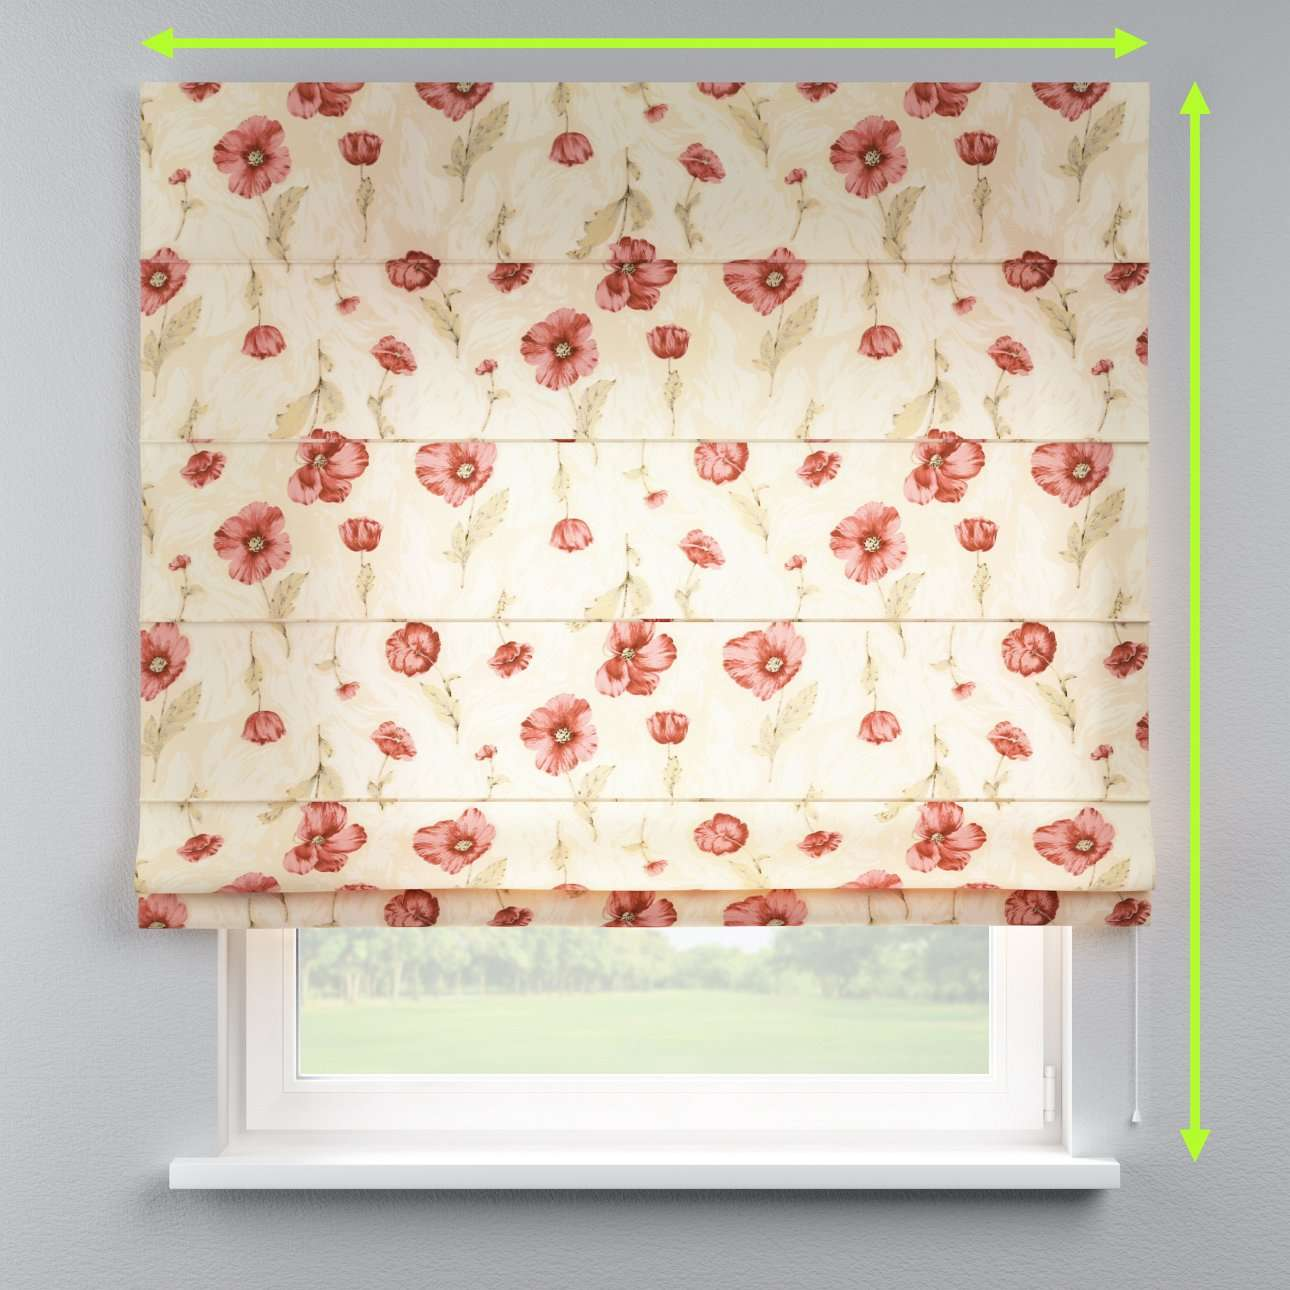 Capri roman blind in collection Flowers, fabric: 303-01